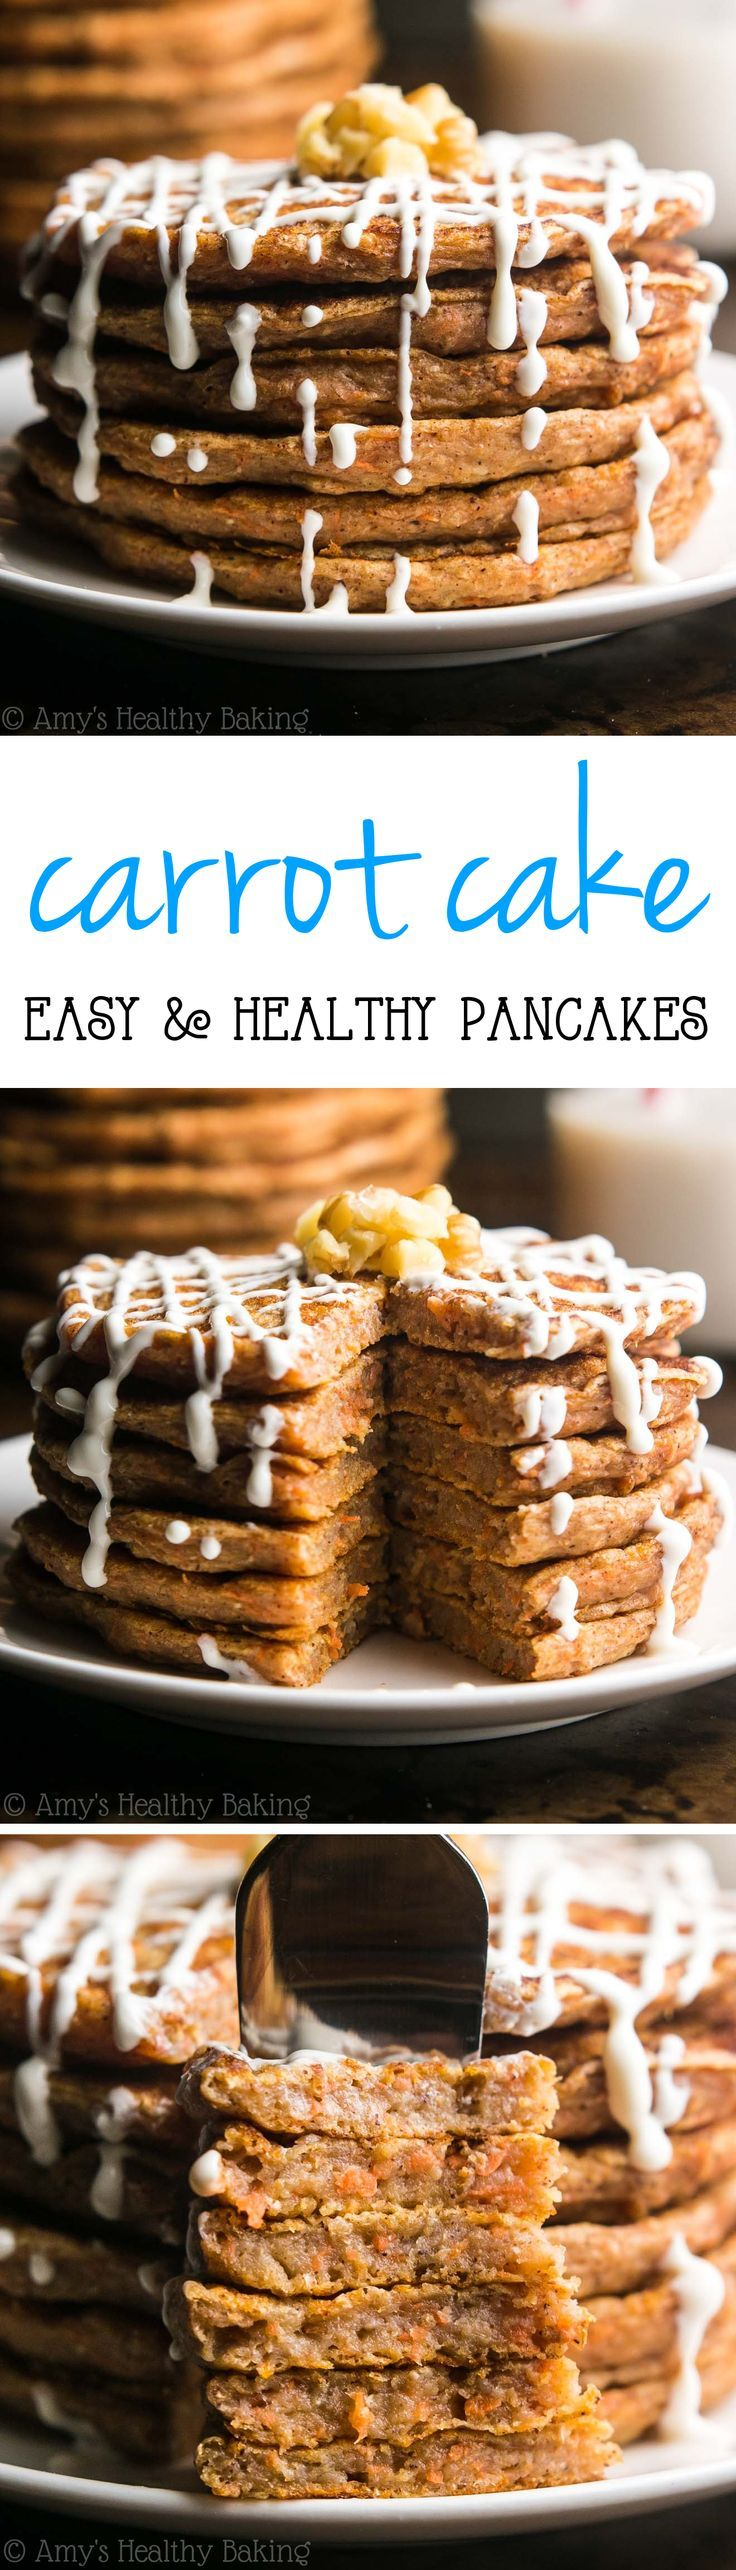 Healthy Carrot Cake Pancakes -- so easy & packed with 9g+ of protein! All clean eating ingredients are used for this healthy breakfast recipe. Pin now to make later!